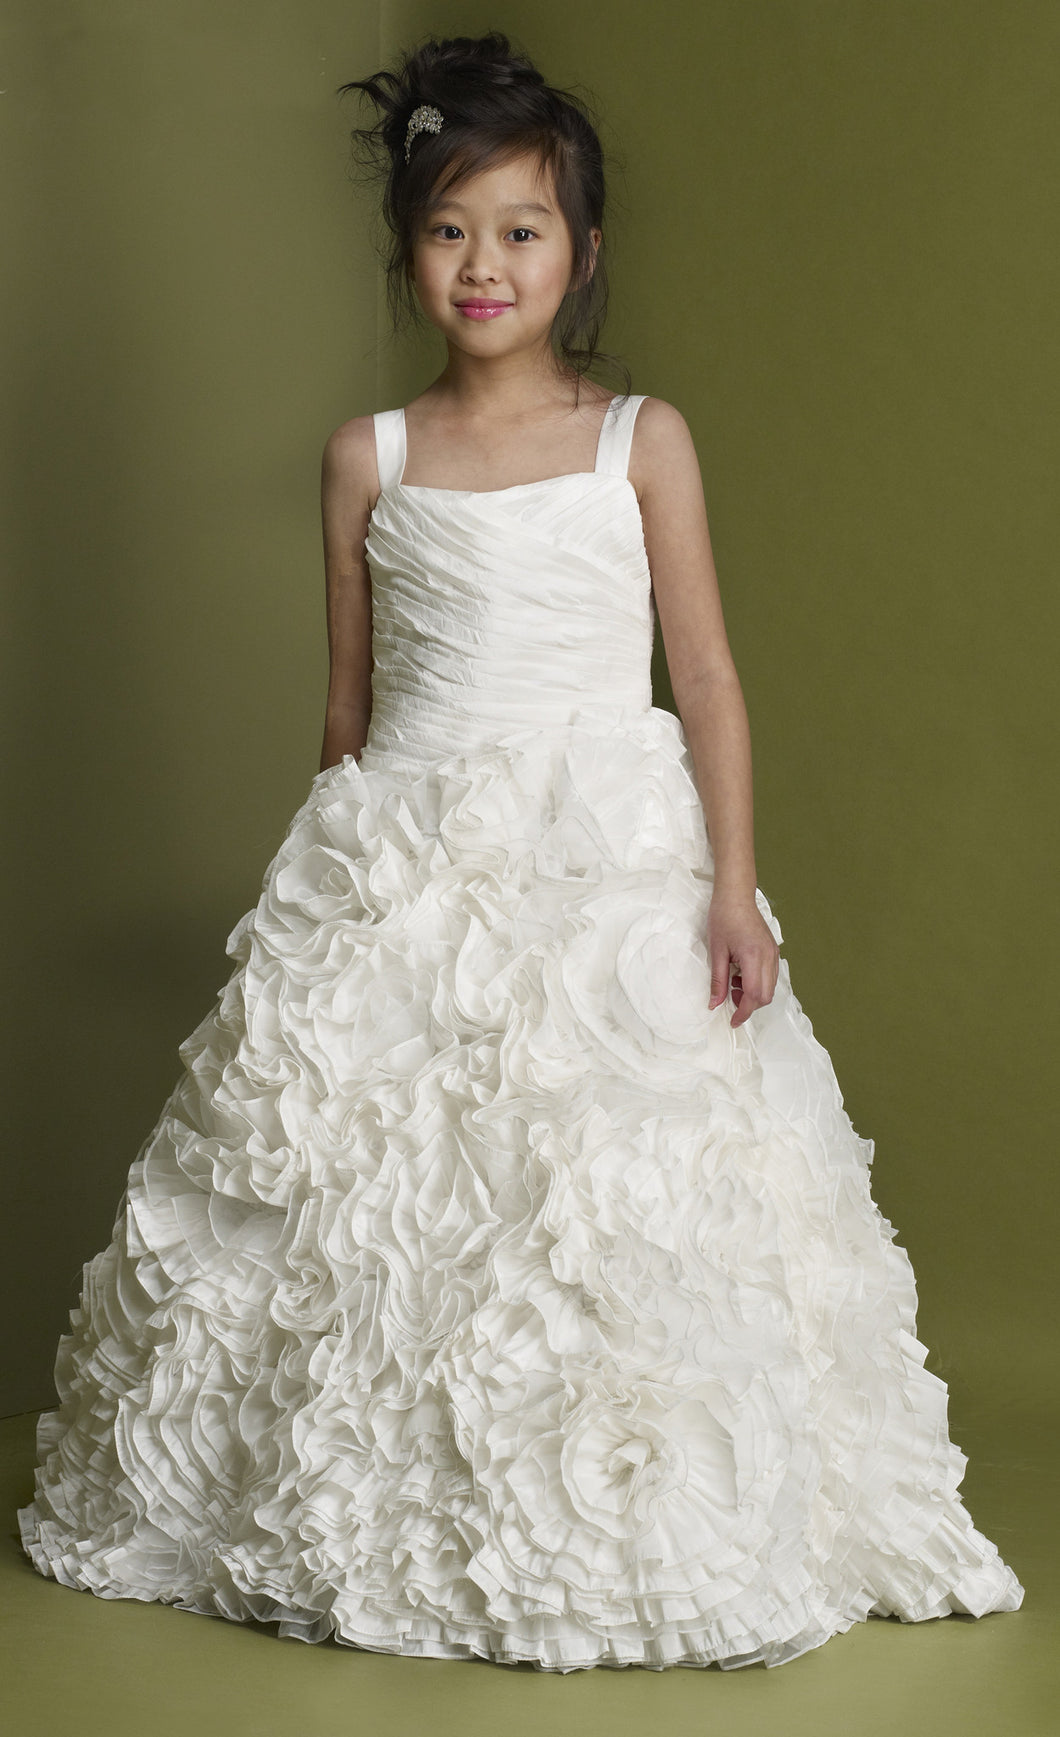 Macis Design #73986 Flower Girl and Pageant Dress